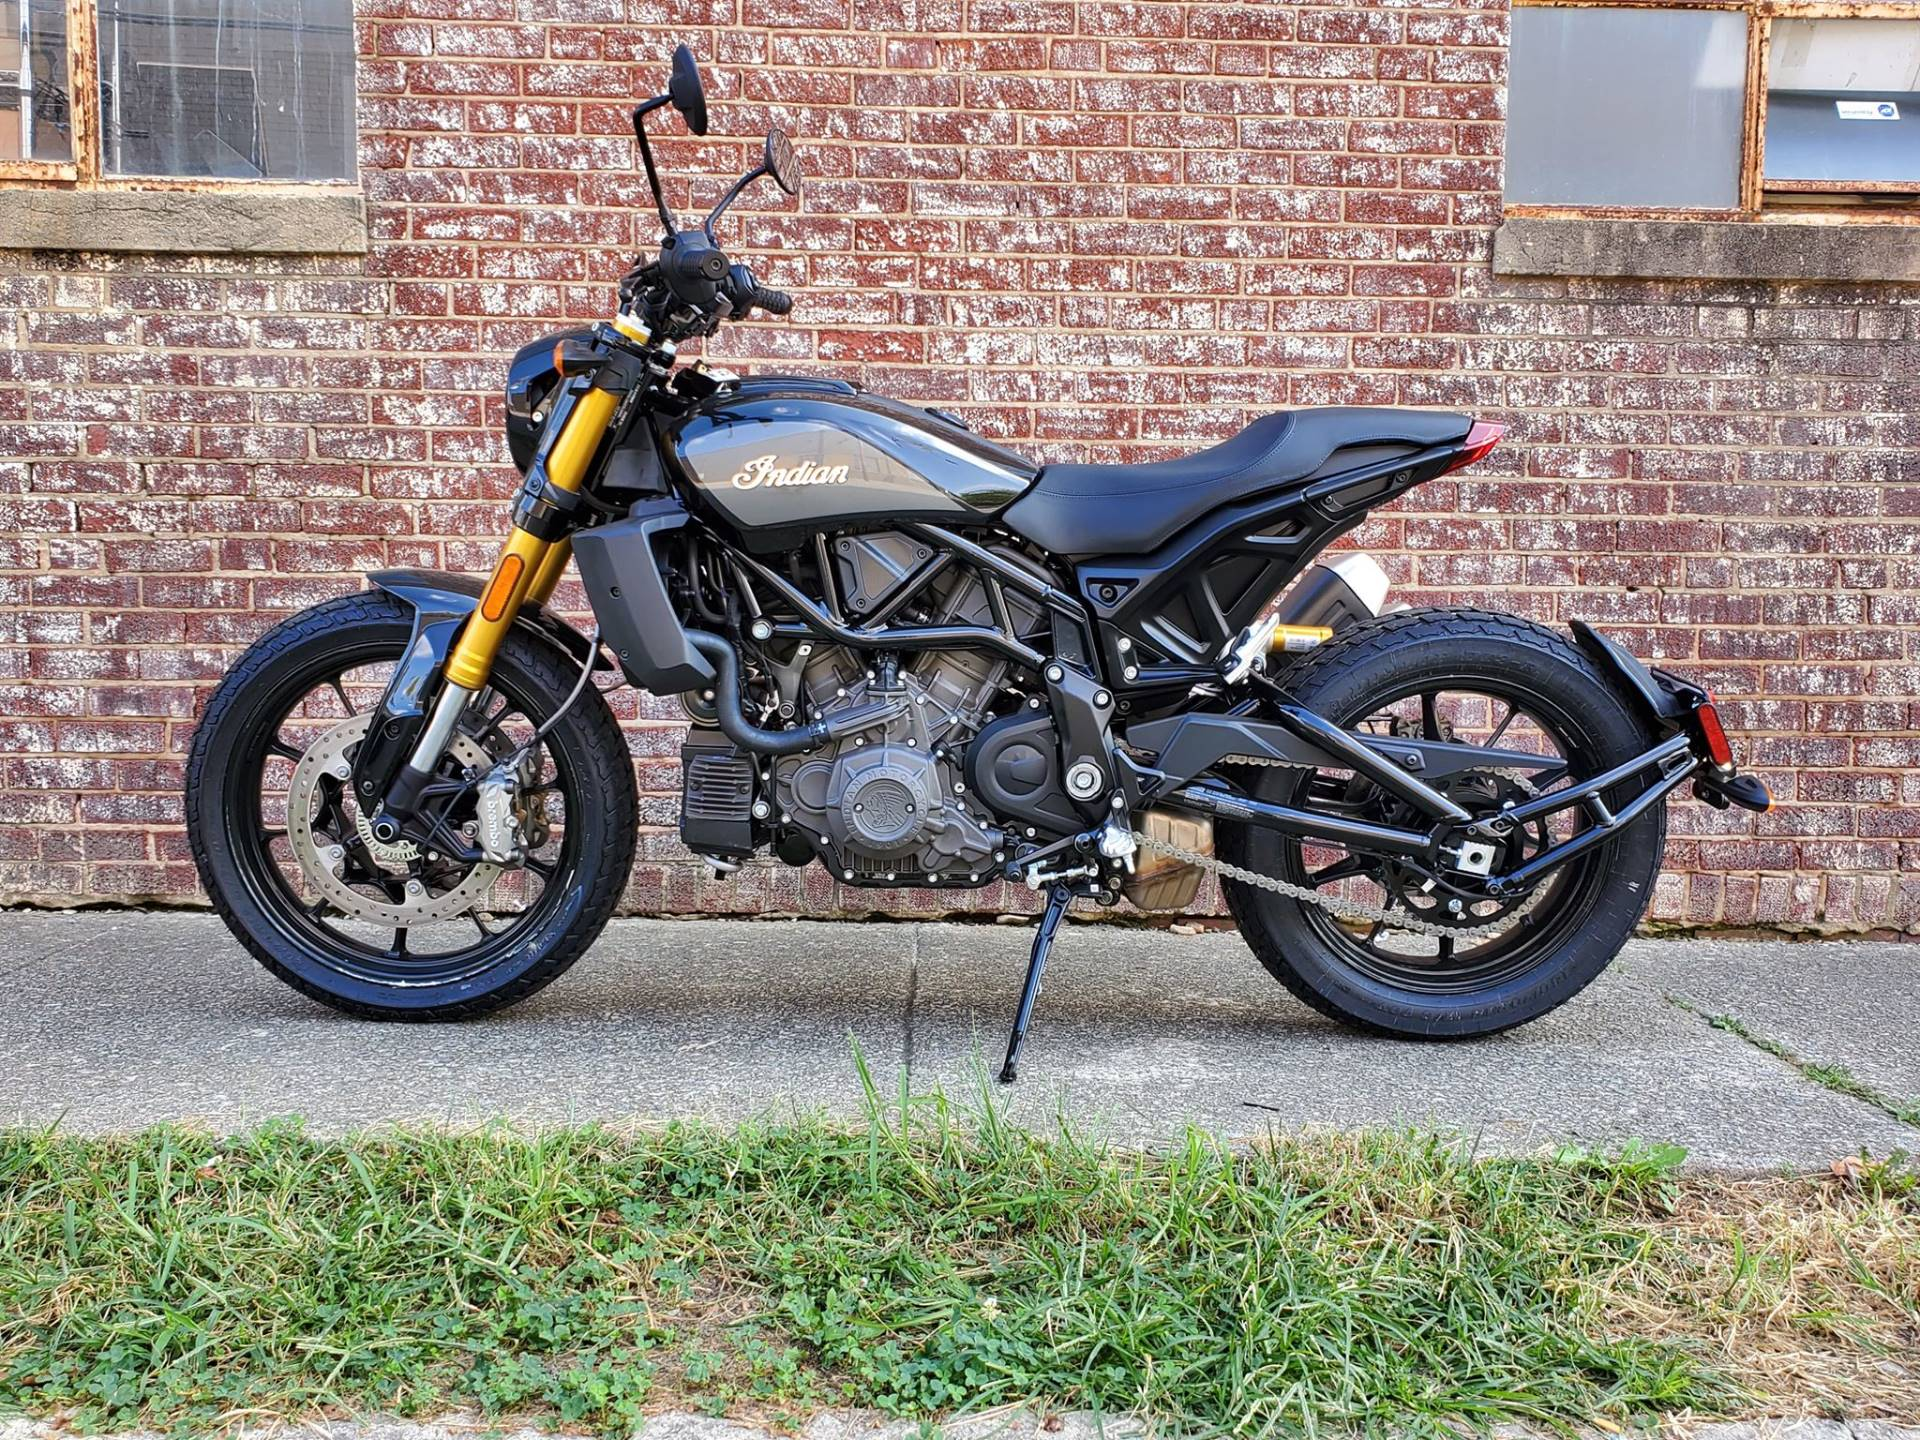 2019 Indian FTR™ 1200 S in Greensboro, North Carolina - Photo 4